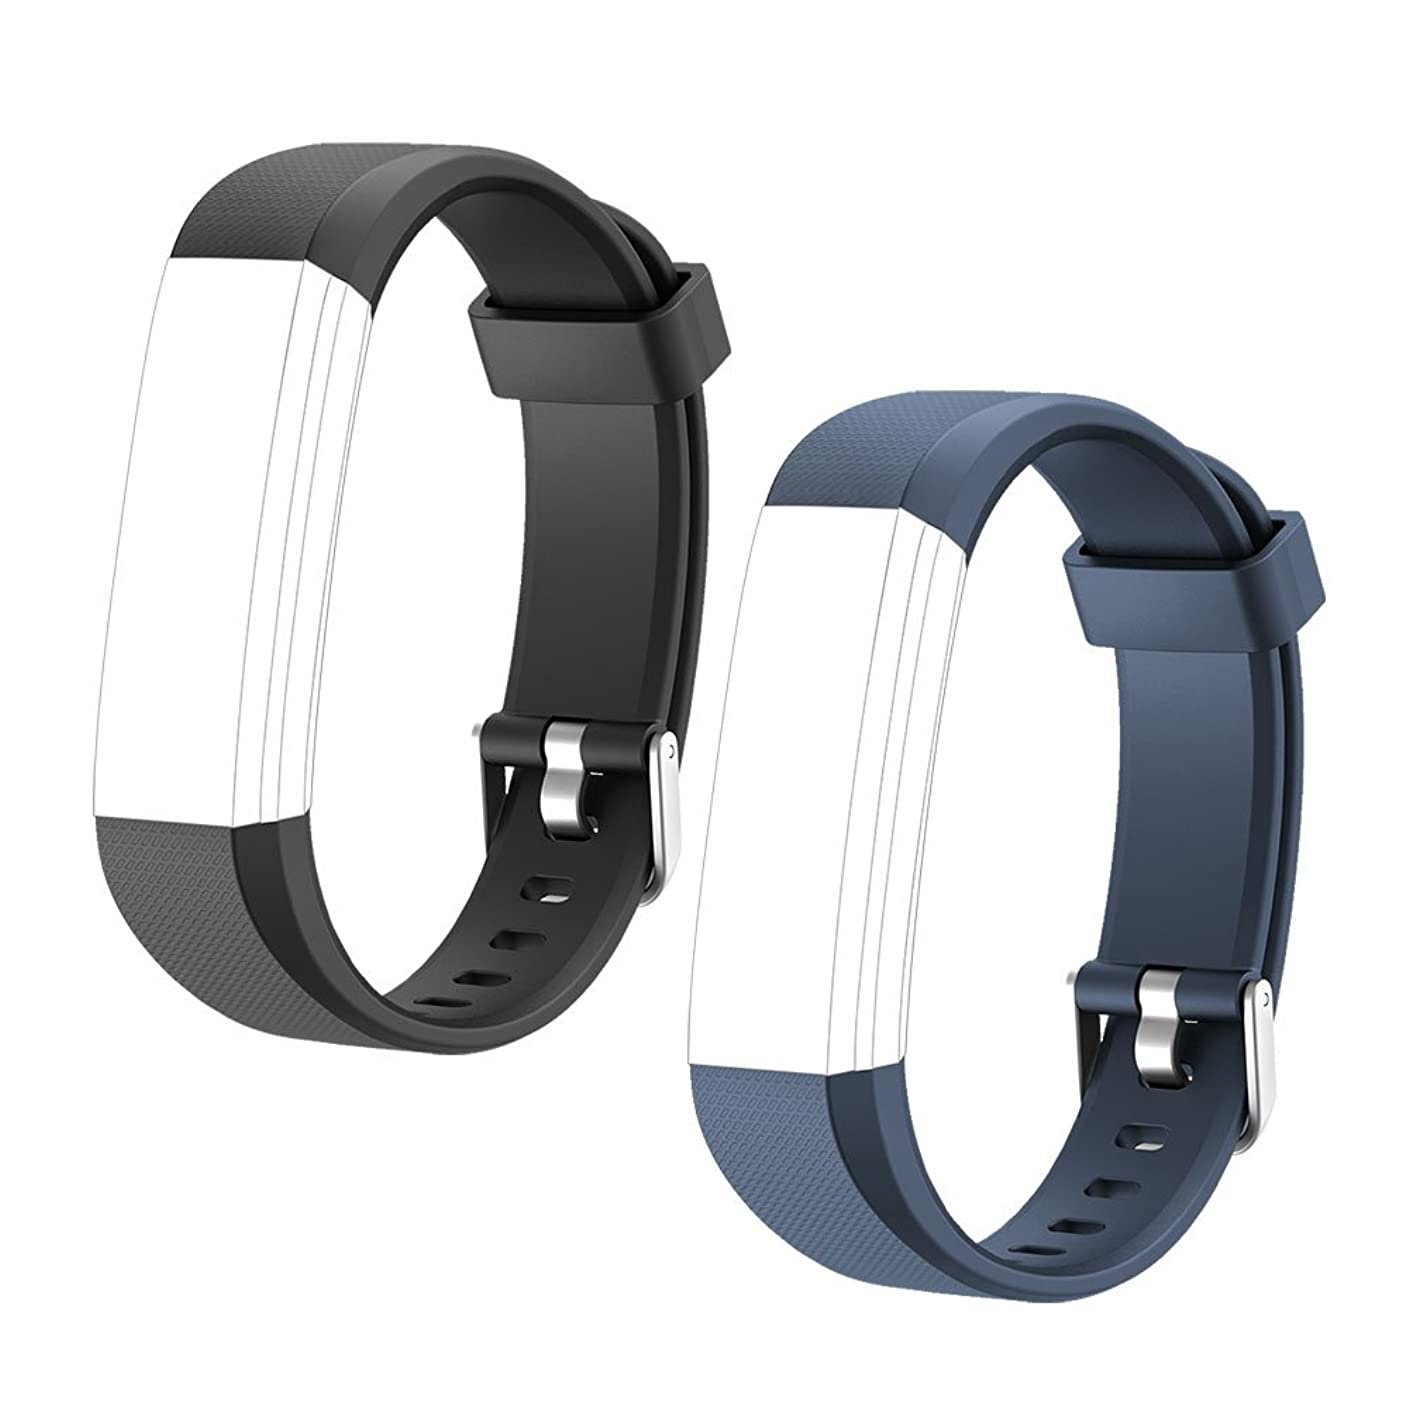 LETSCOM Replacement Bands for Fitness Tracker ID115U or ID115UHR, 2 Pack (Black, Blue)